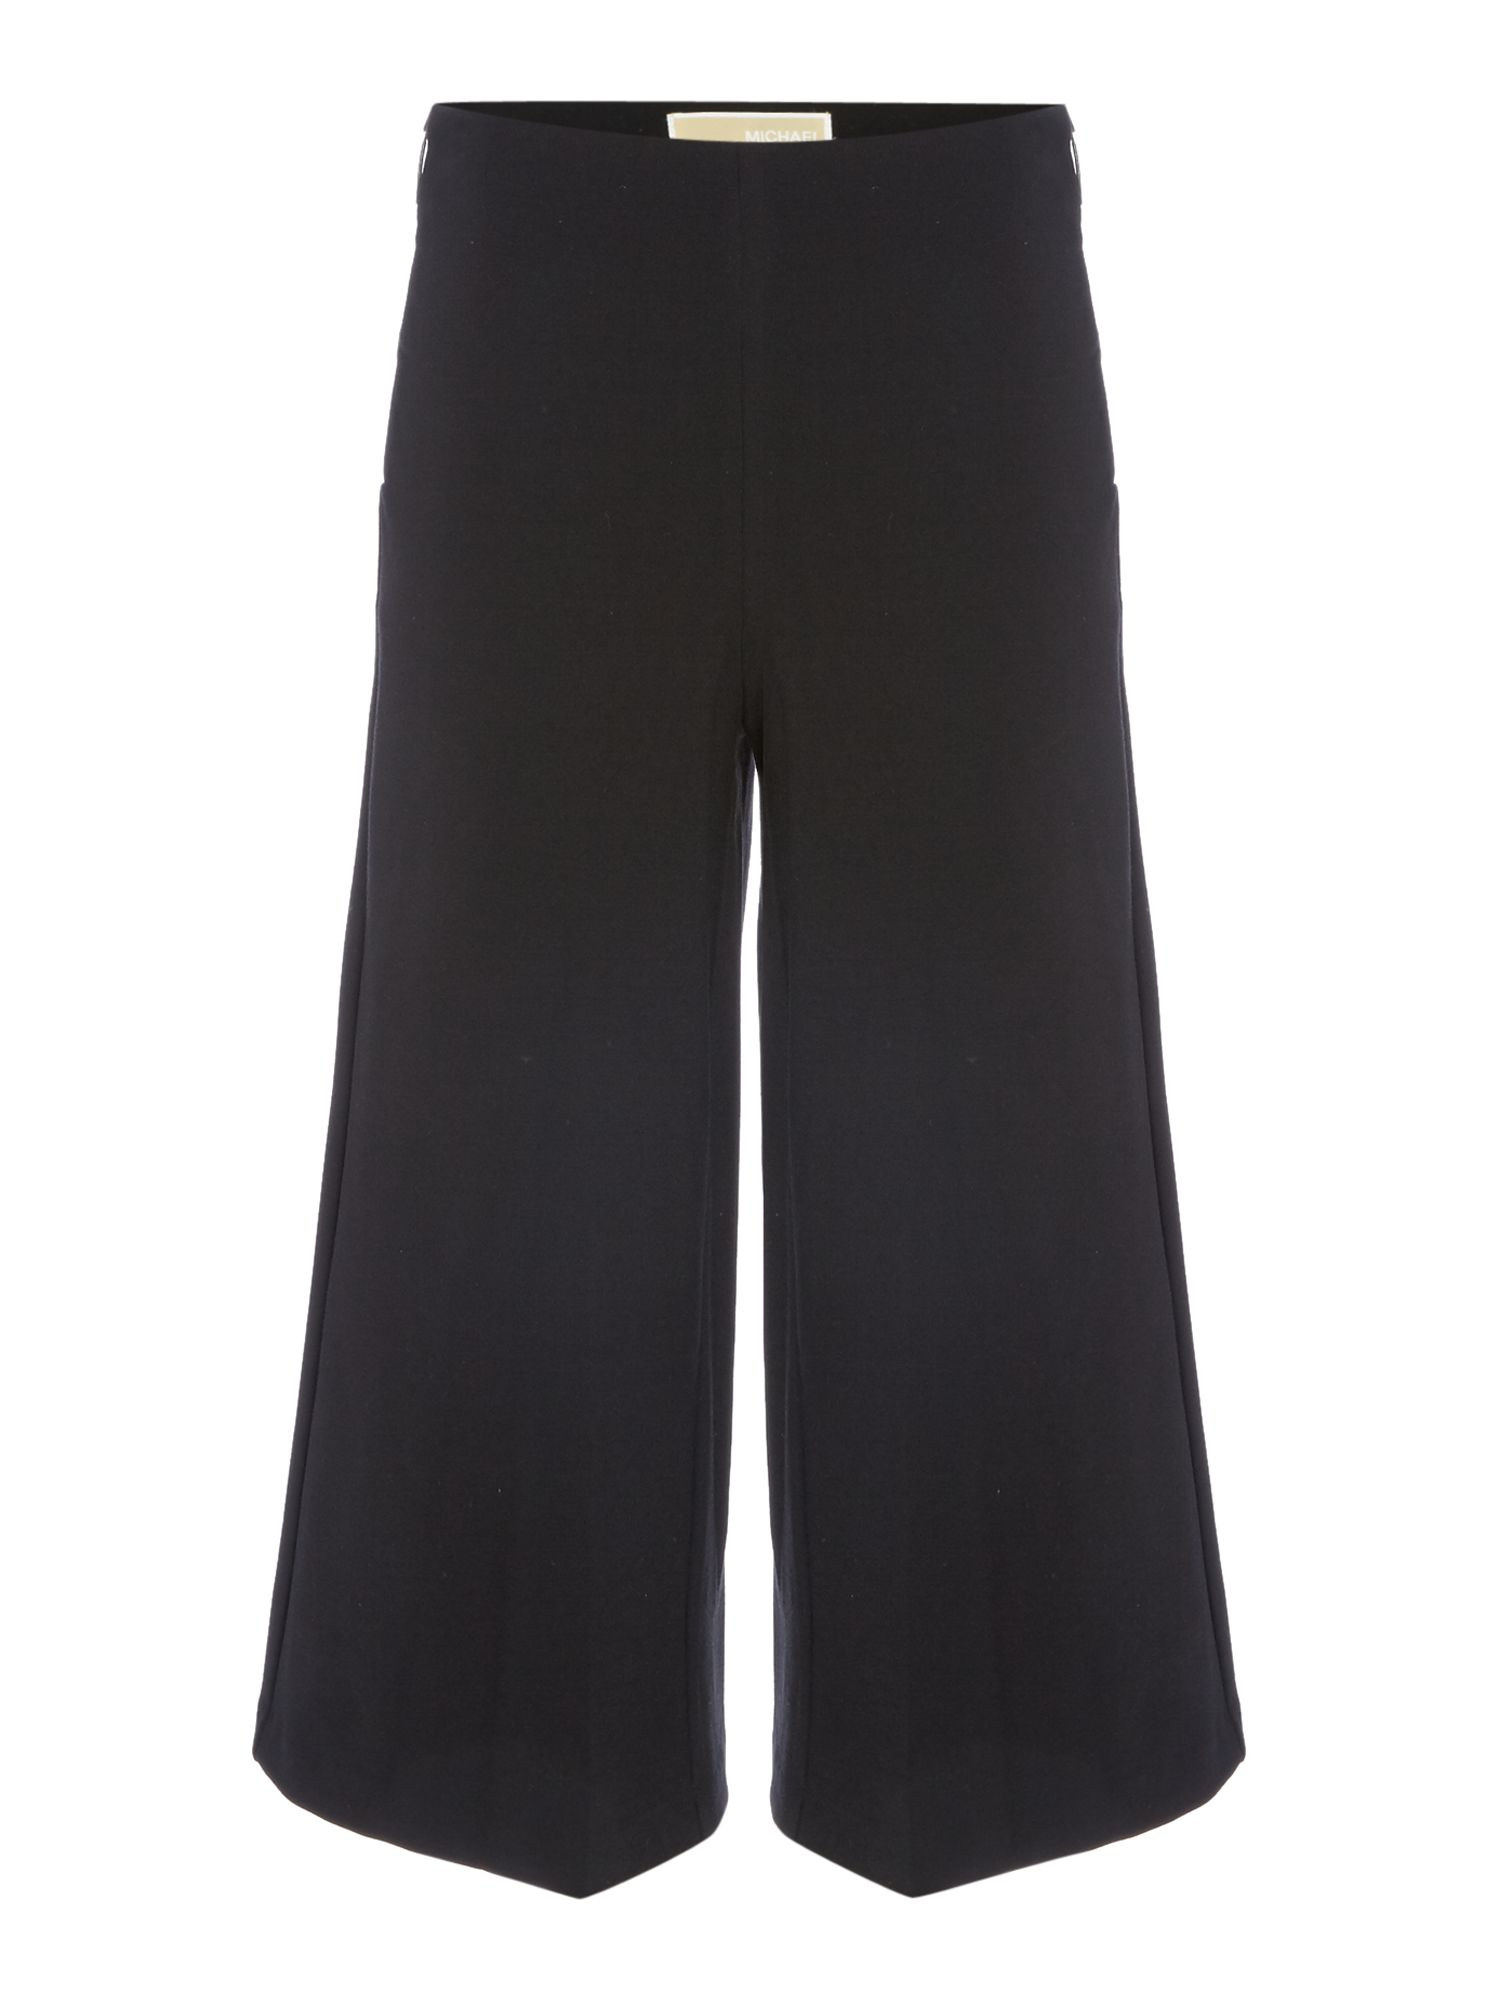 Michael Kors Side Zip Wide Leg Jeans, Black